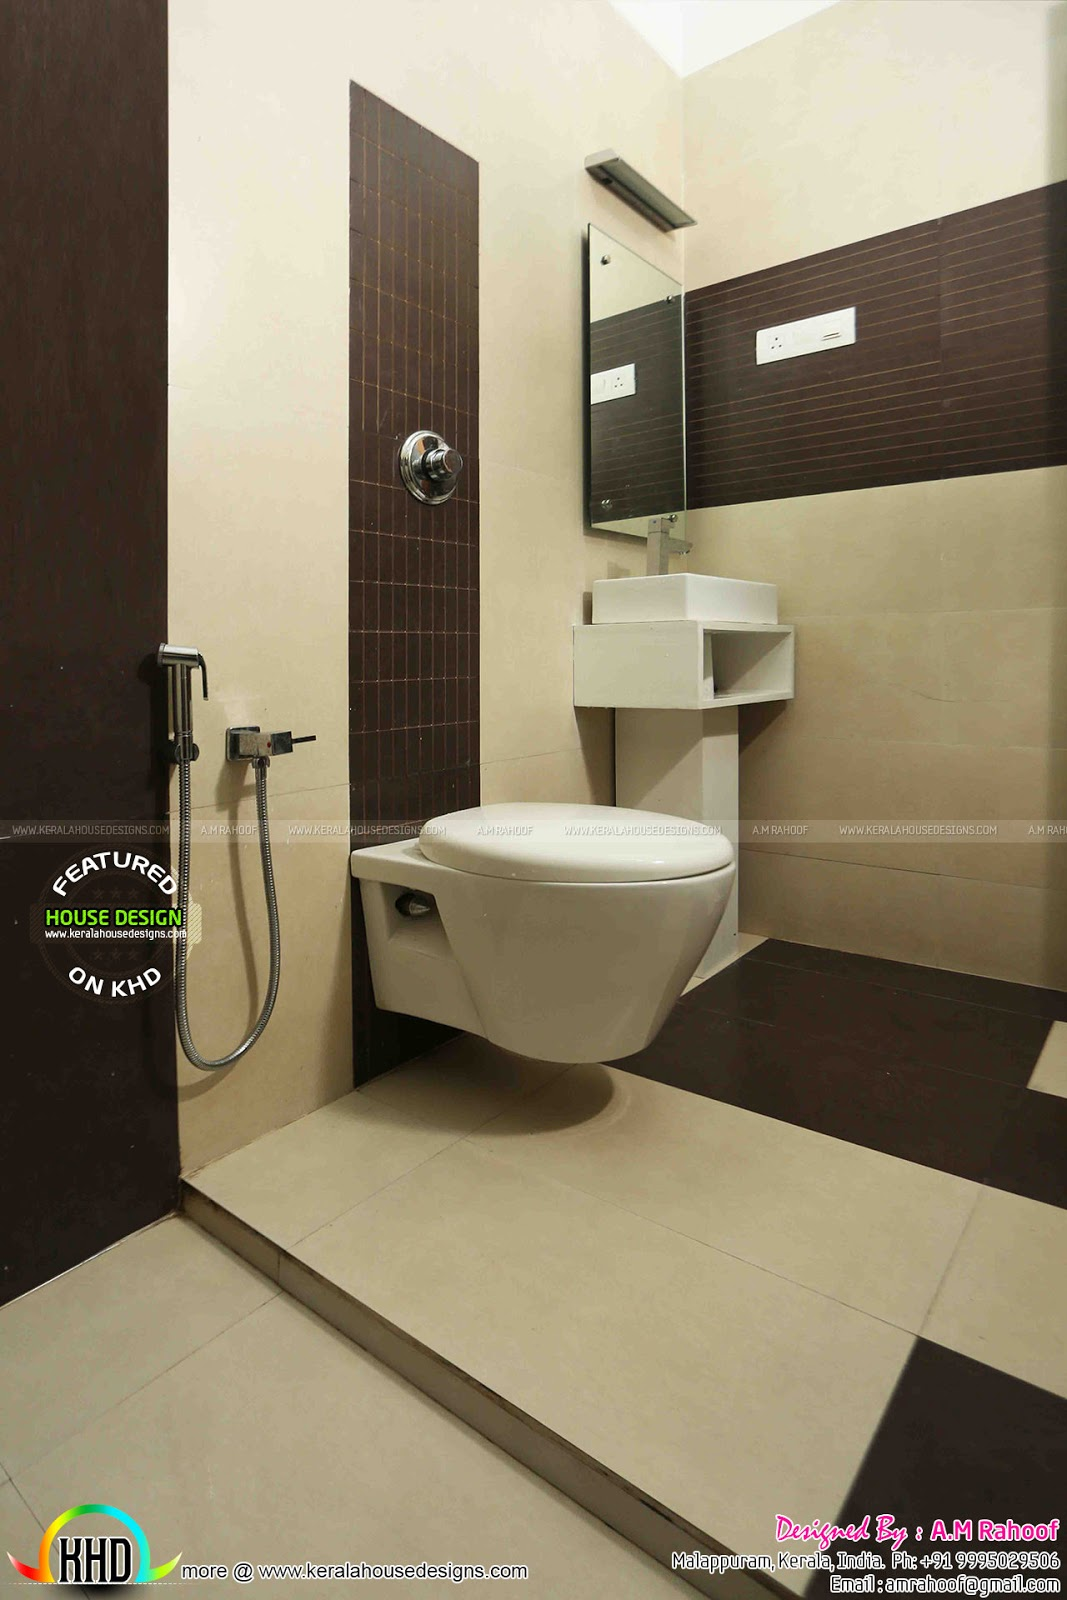 finished house project in kerala bathroom bathroom - Bathroom Designs Kerala